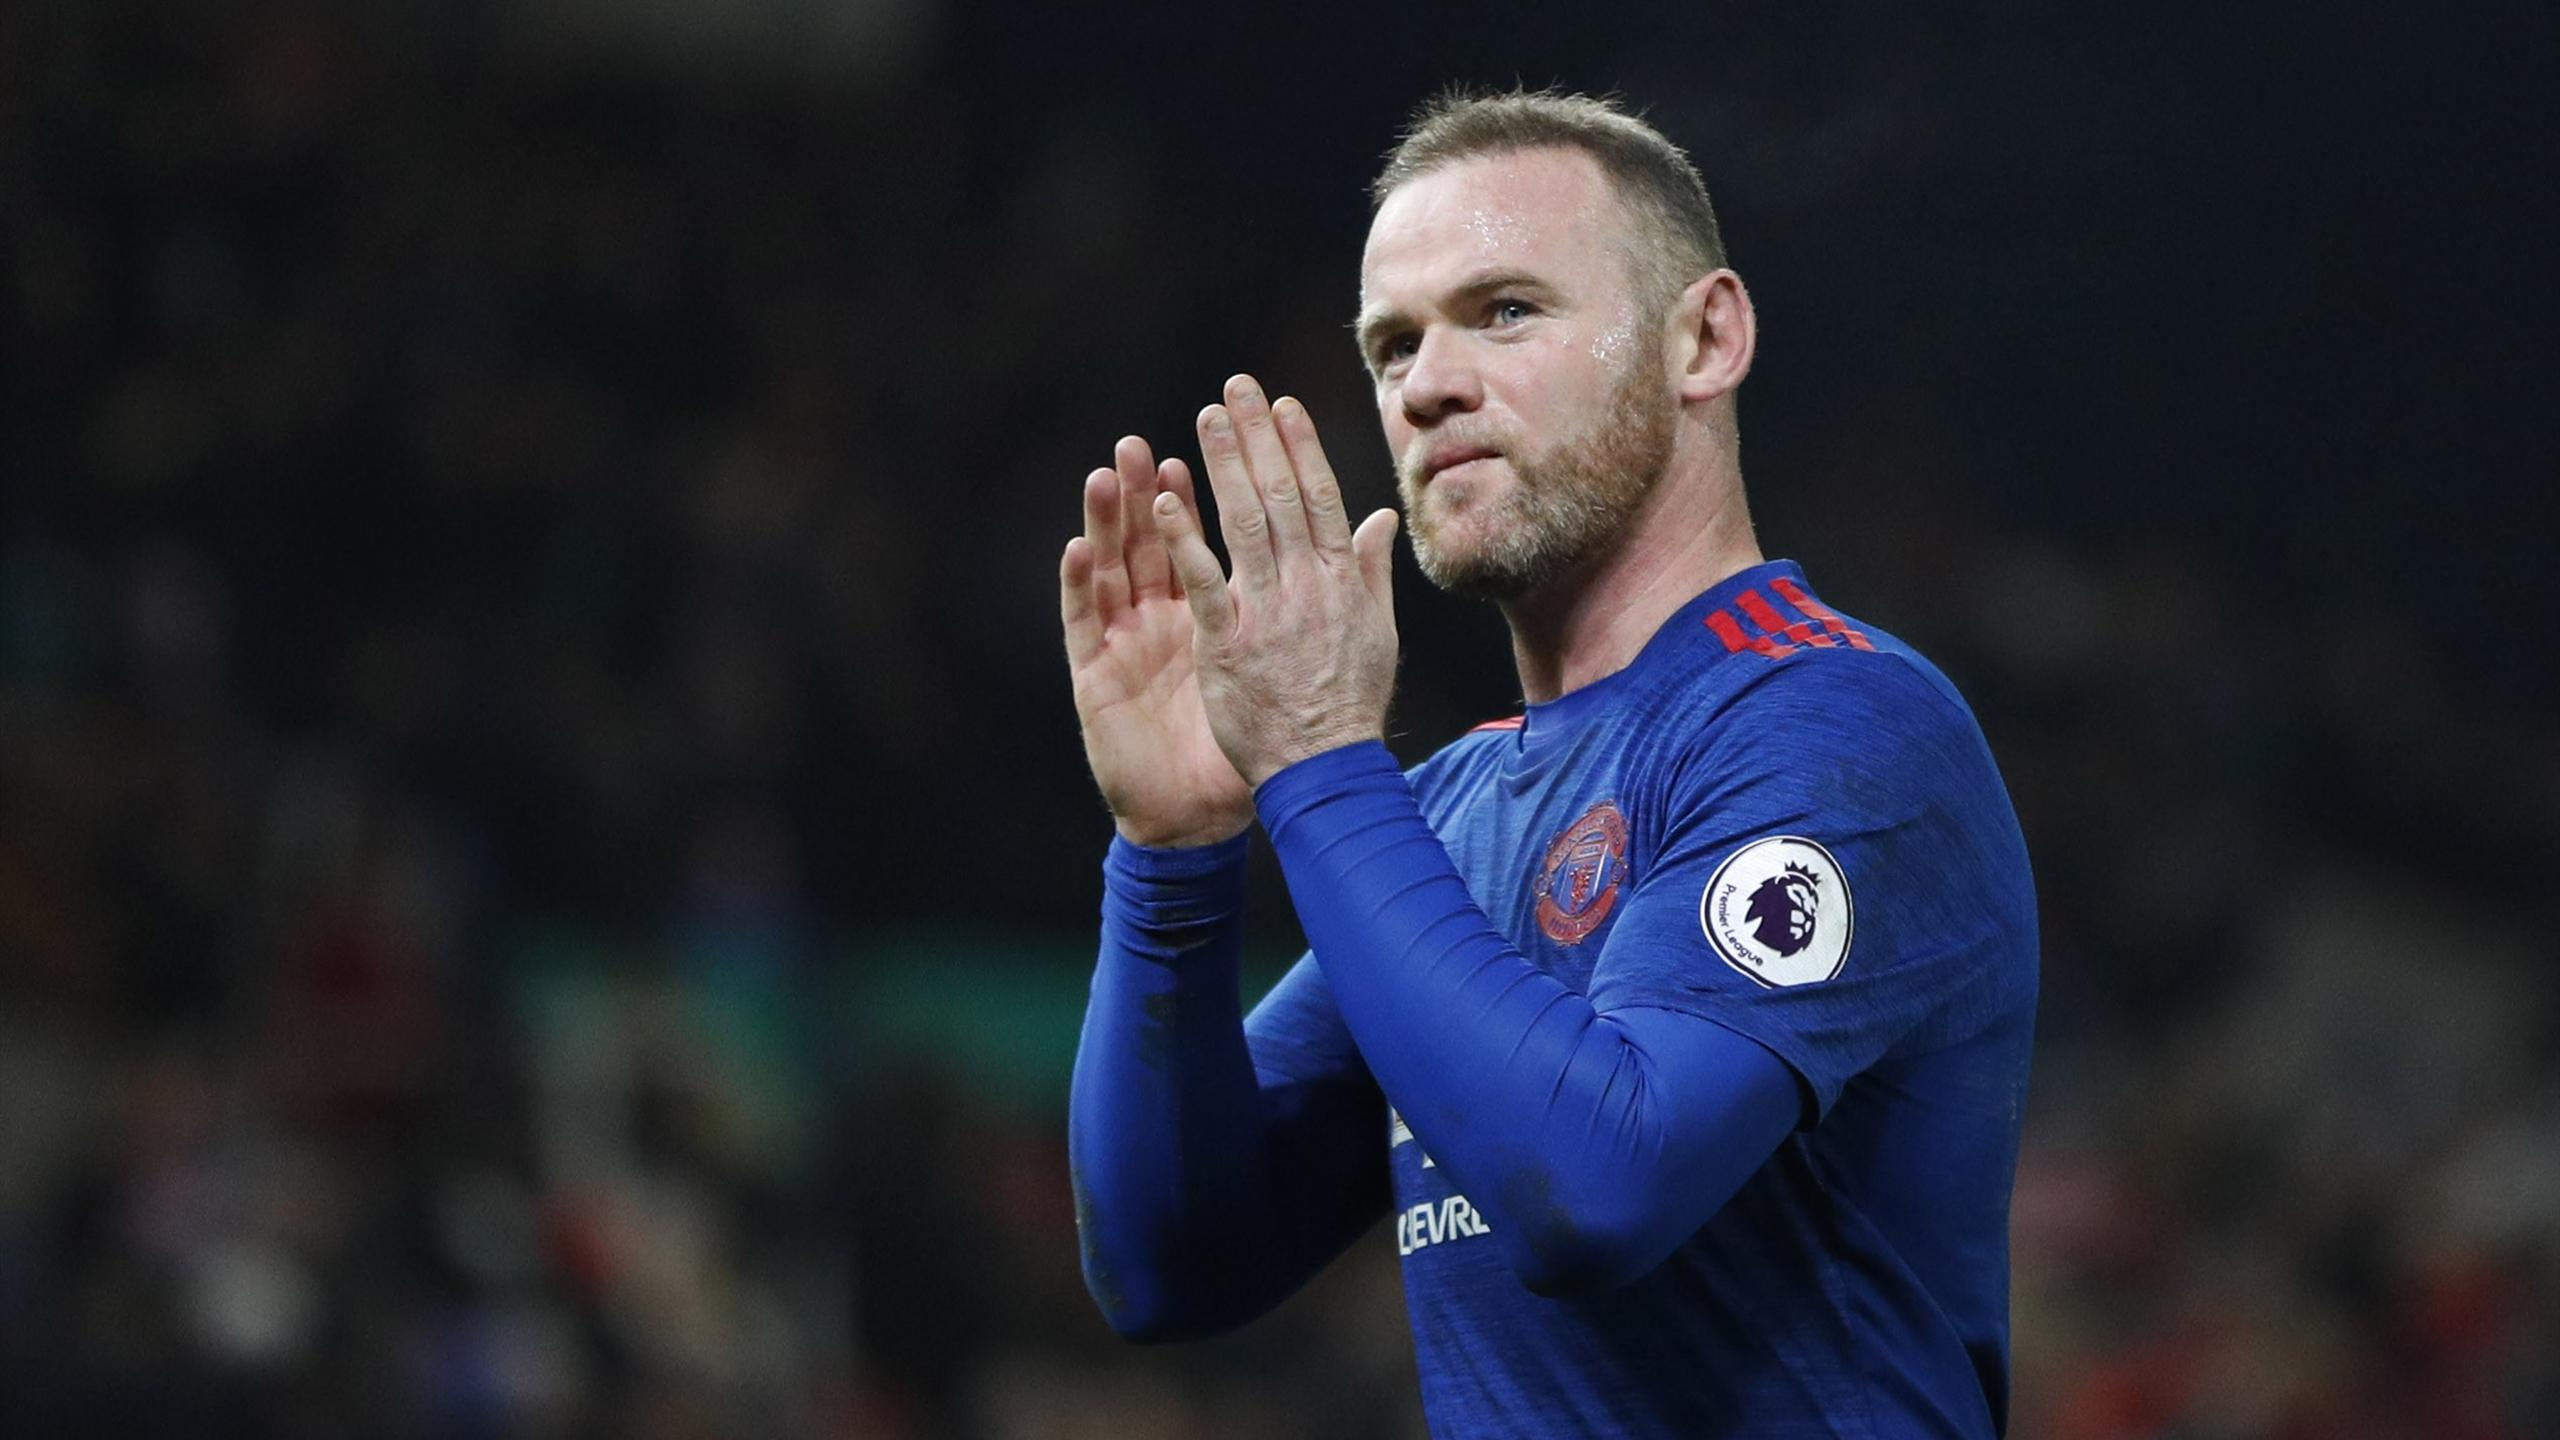 Manchester United's Wayne Rooney applauds fans